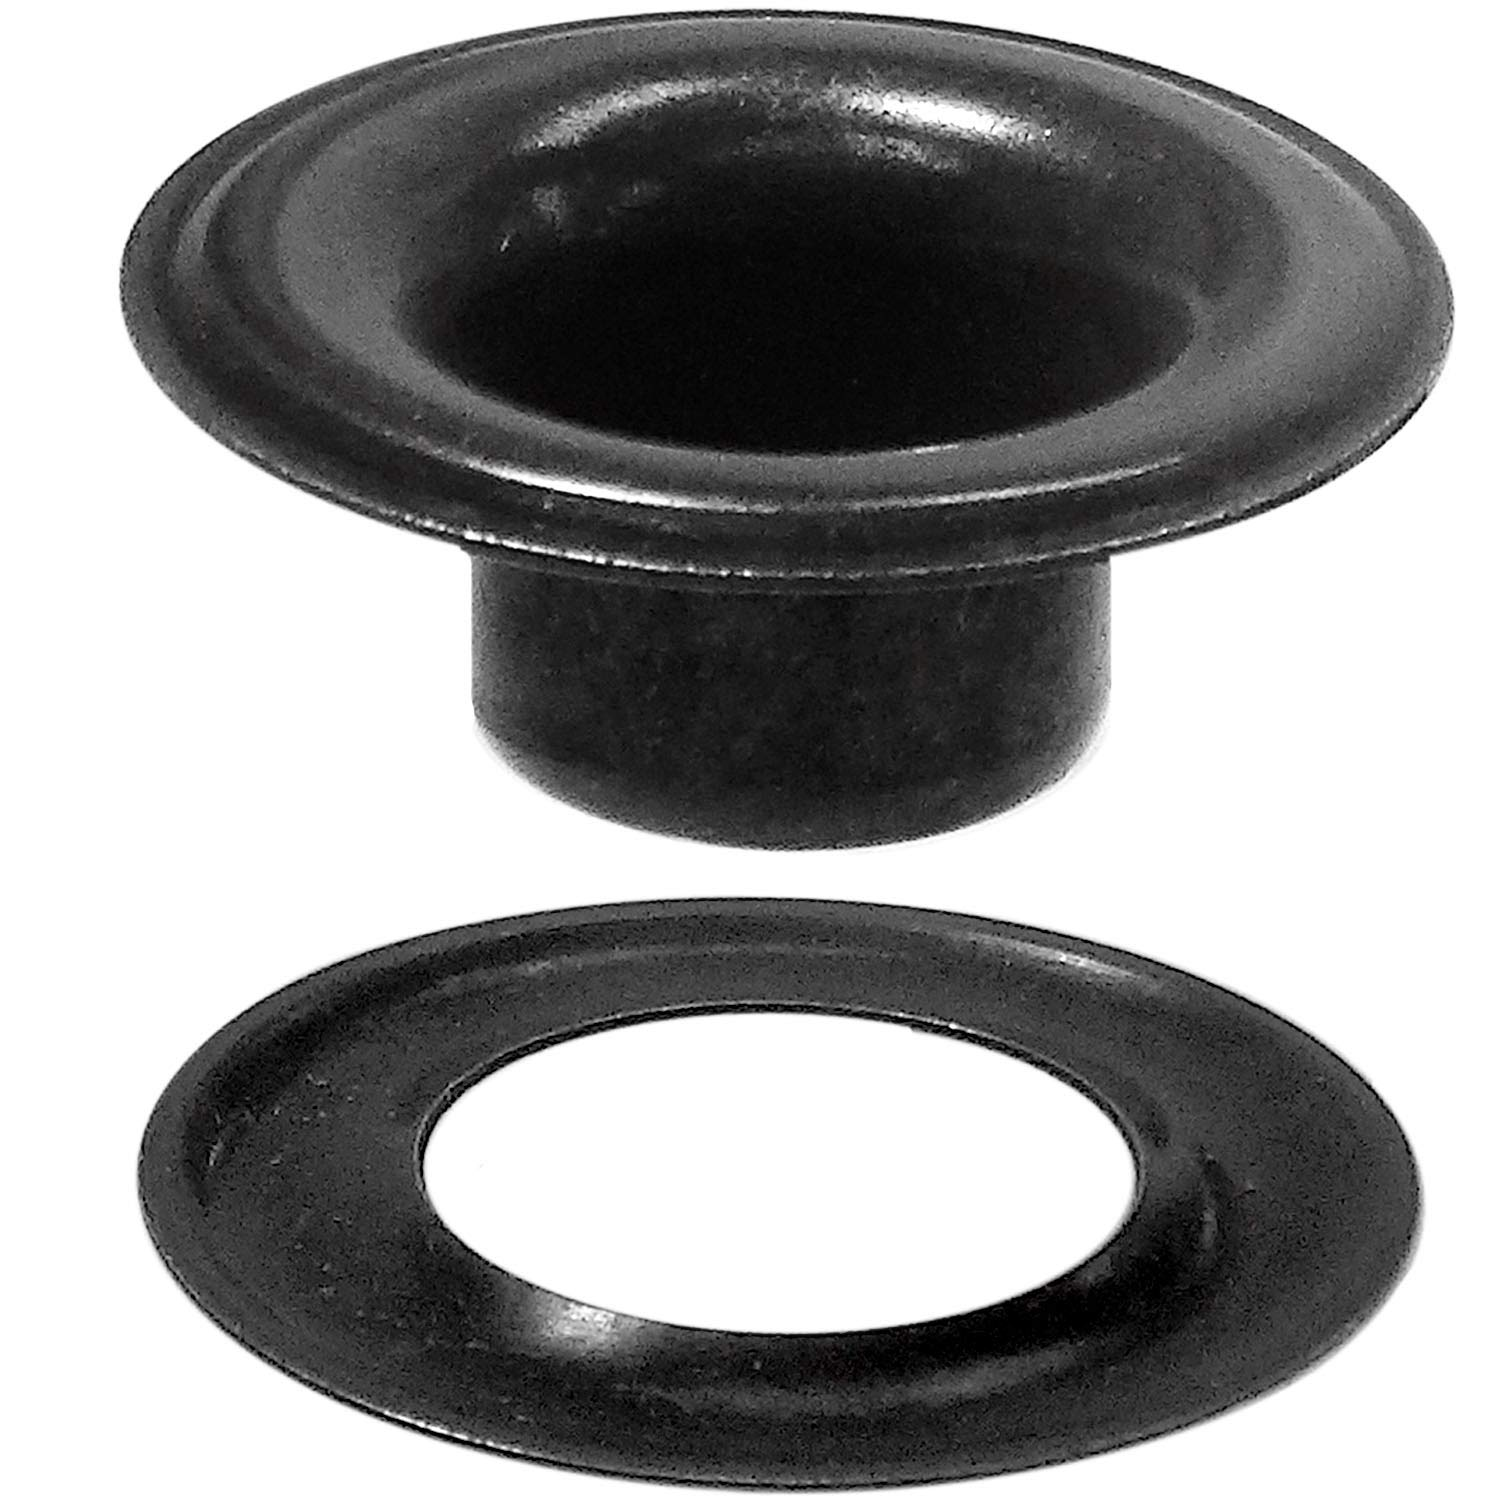 Stimpson Sheet Metal Grommet and Washer Dull Black Chem Durable, Reliable, Heavy-Duty #5 Set (720 pieces of each)